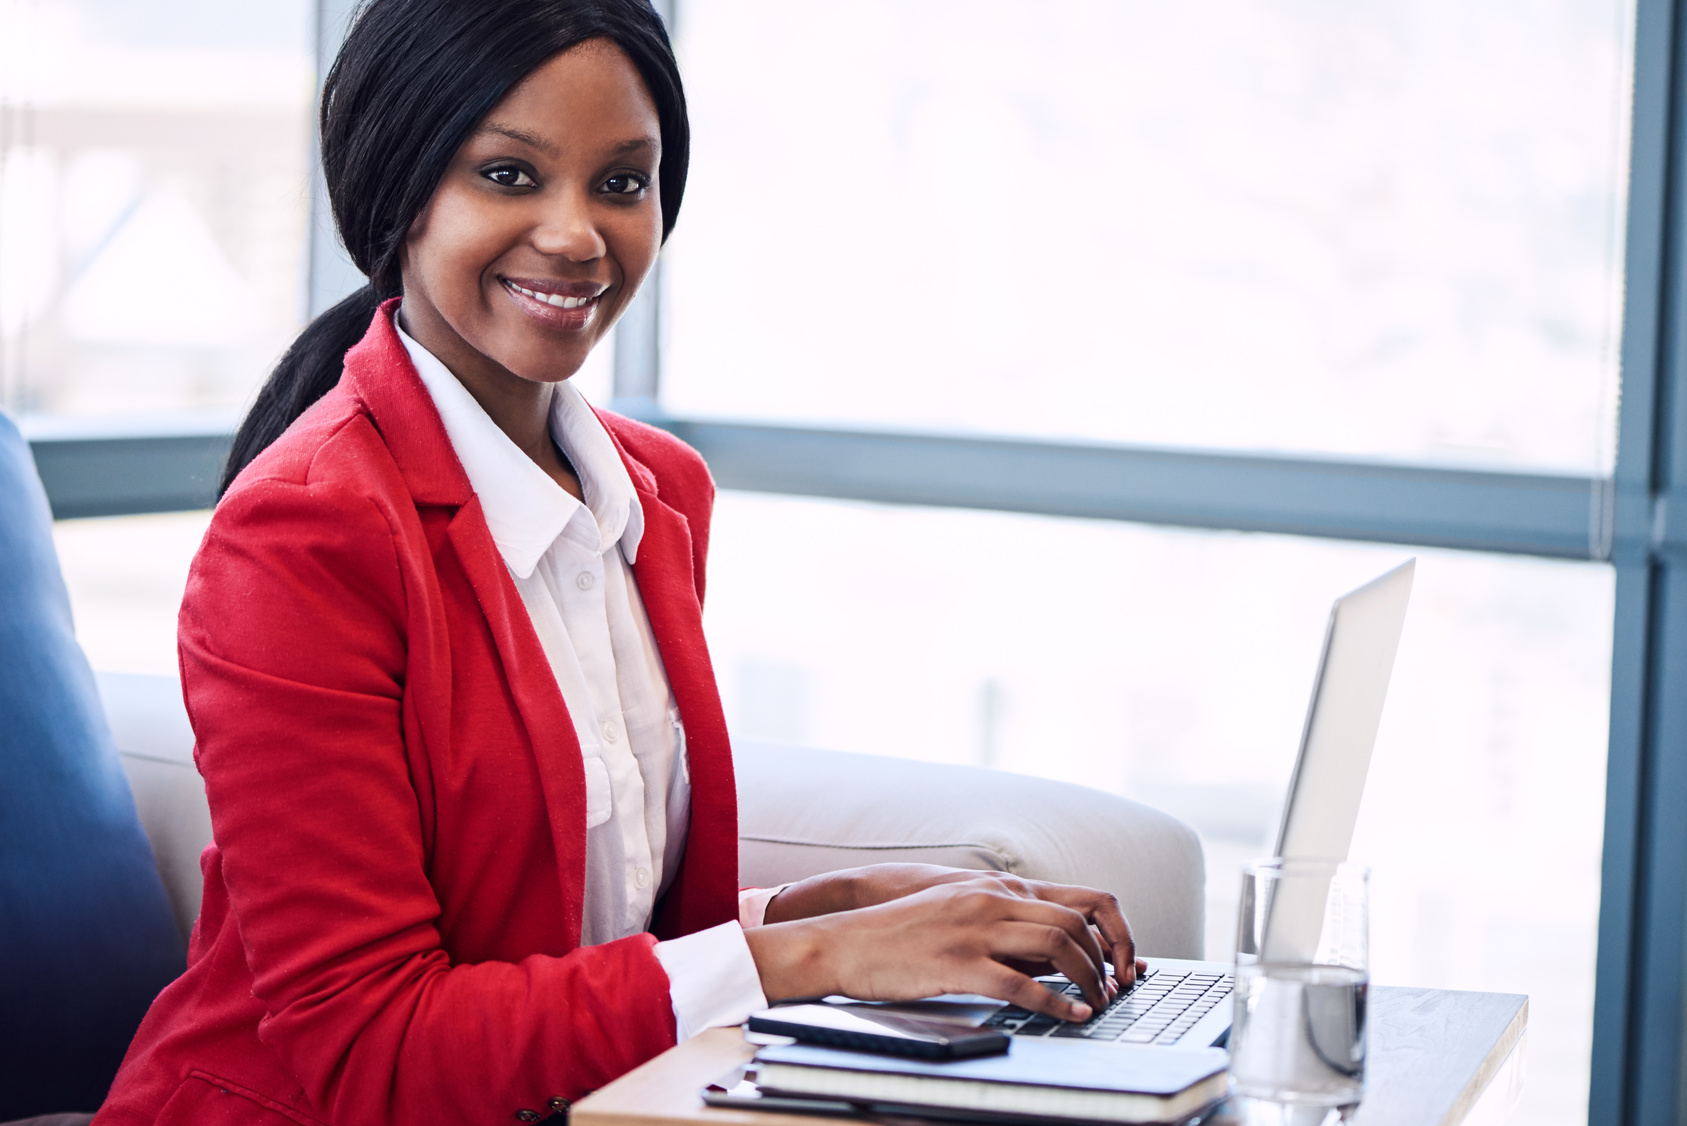 black businesswoman looking into camera with her hands on laptop